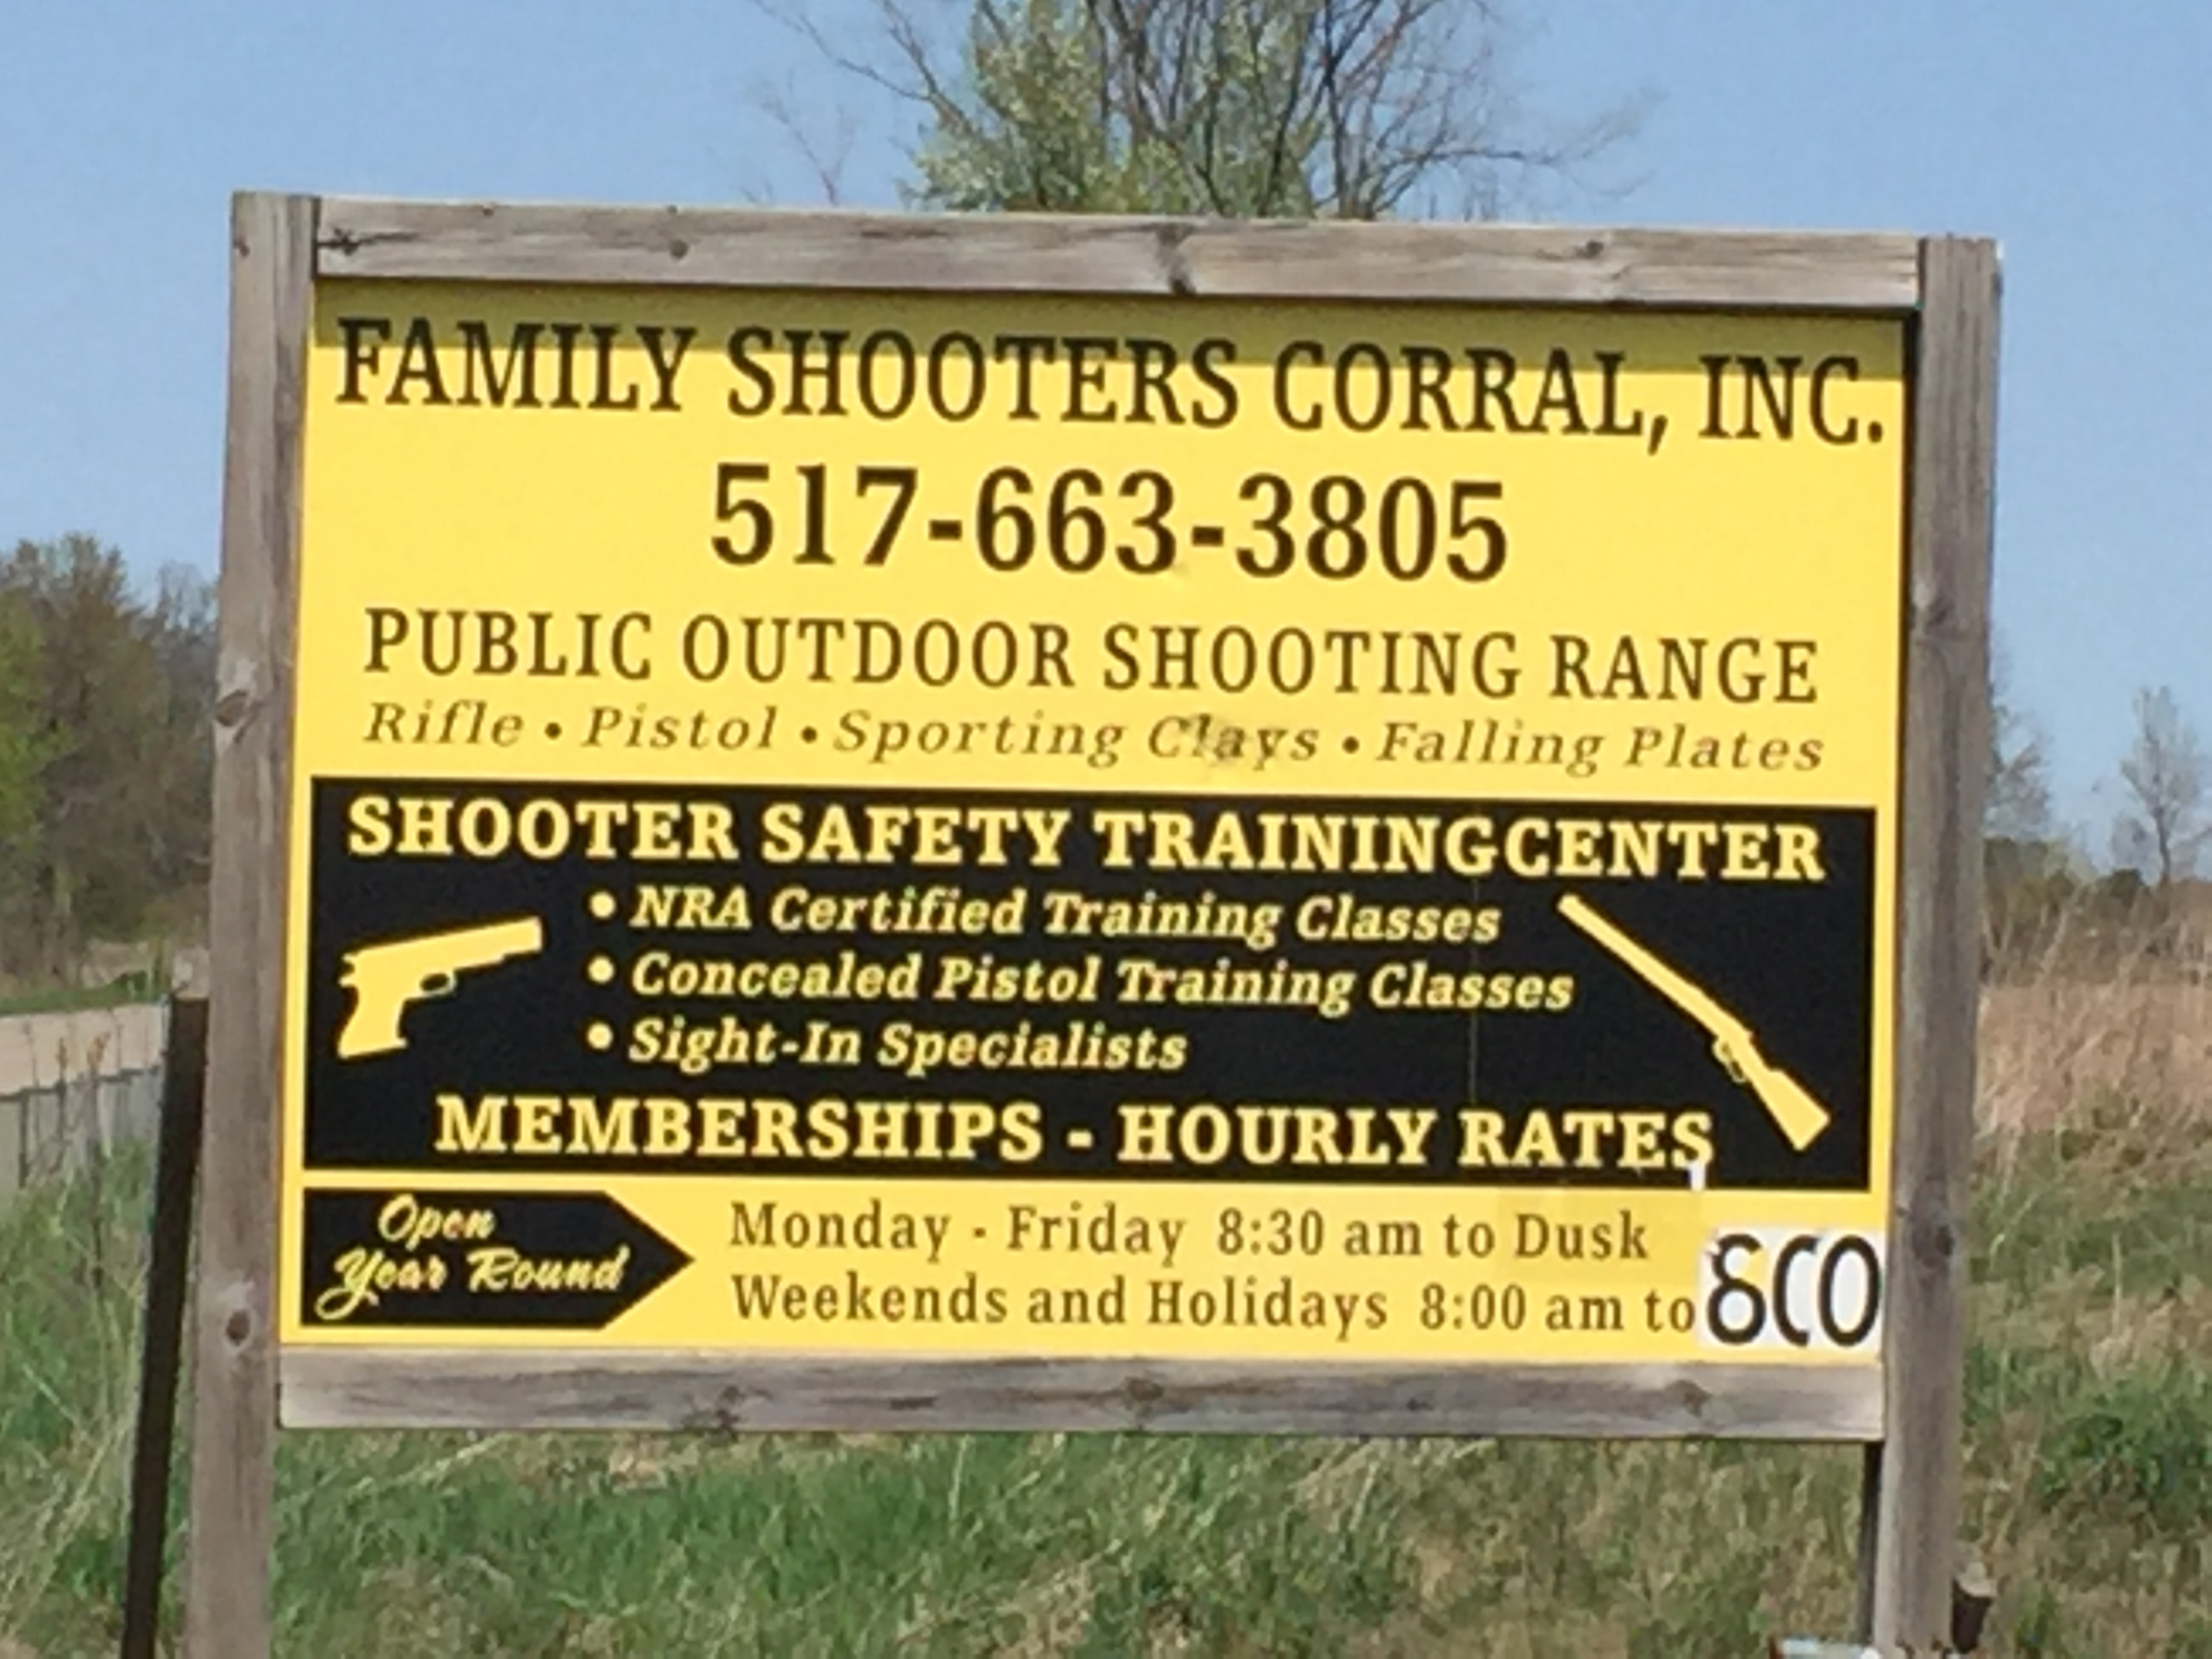 Shooting Range - Eaton Rapids Michigan - Family Shooters Corral Inc